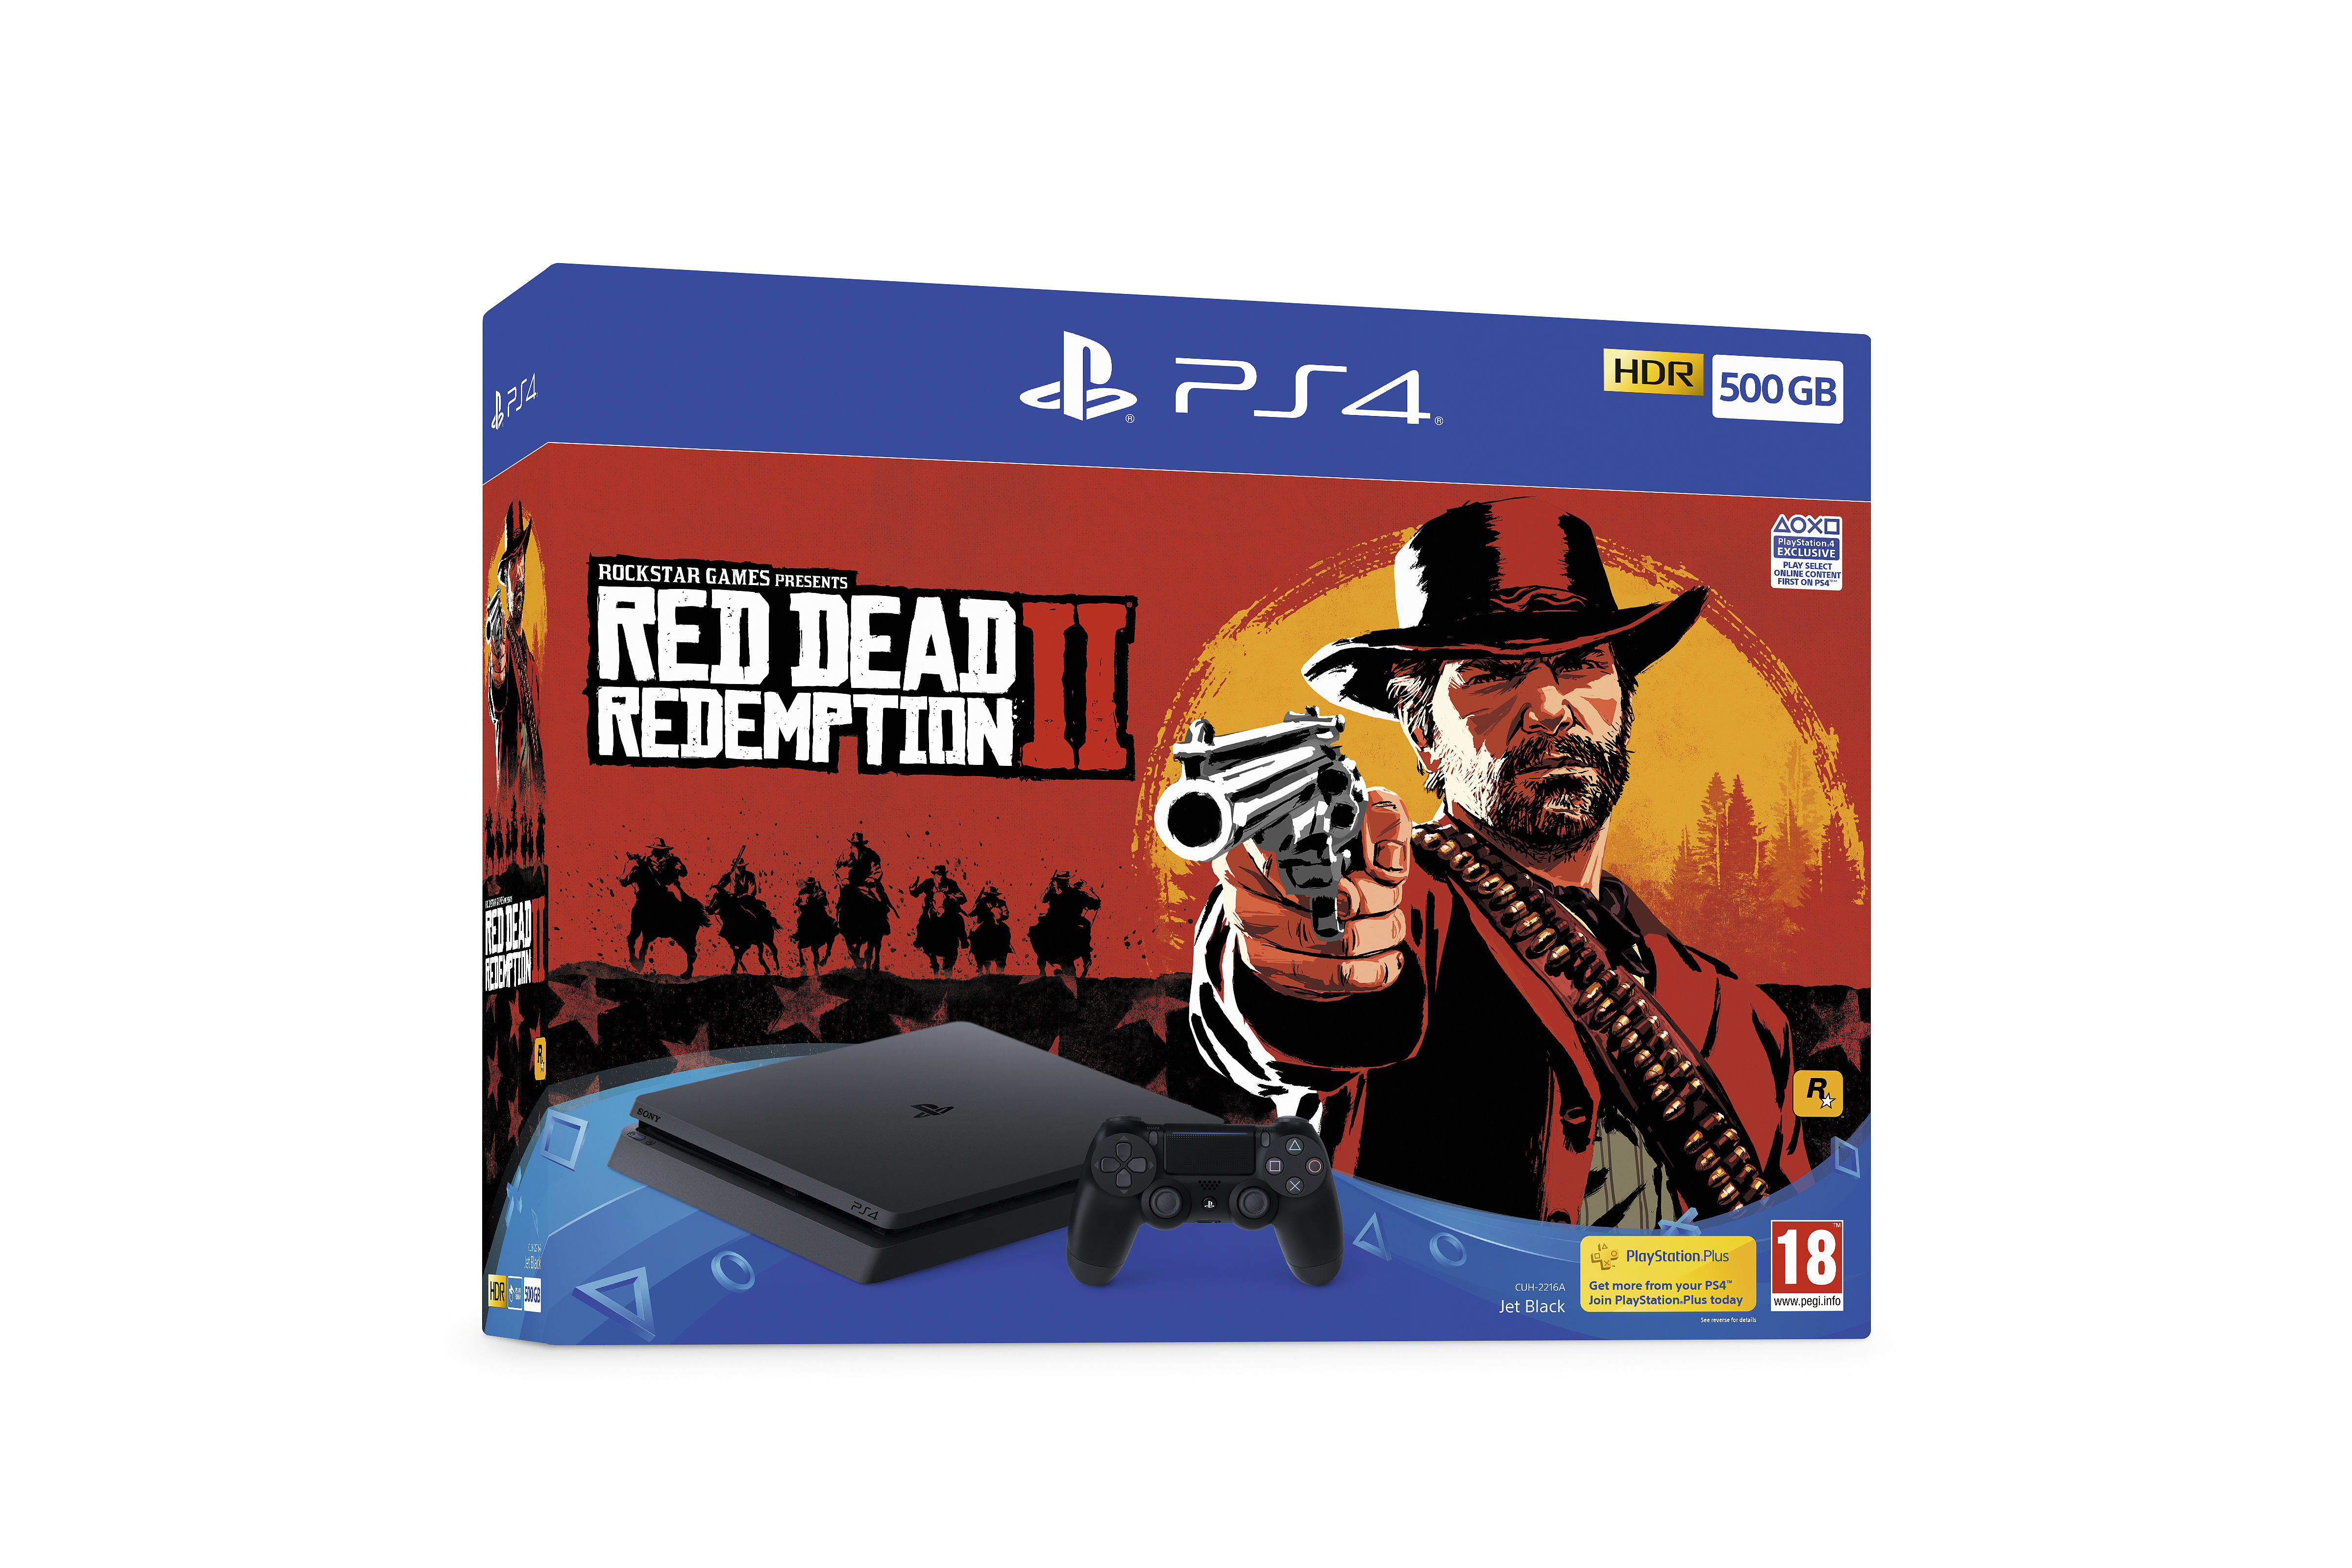 Ps4 500gb Bundles With Red Dead Redemption 2 Game Sony Playstation 4 Black Bundle